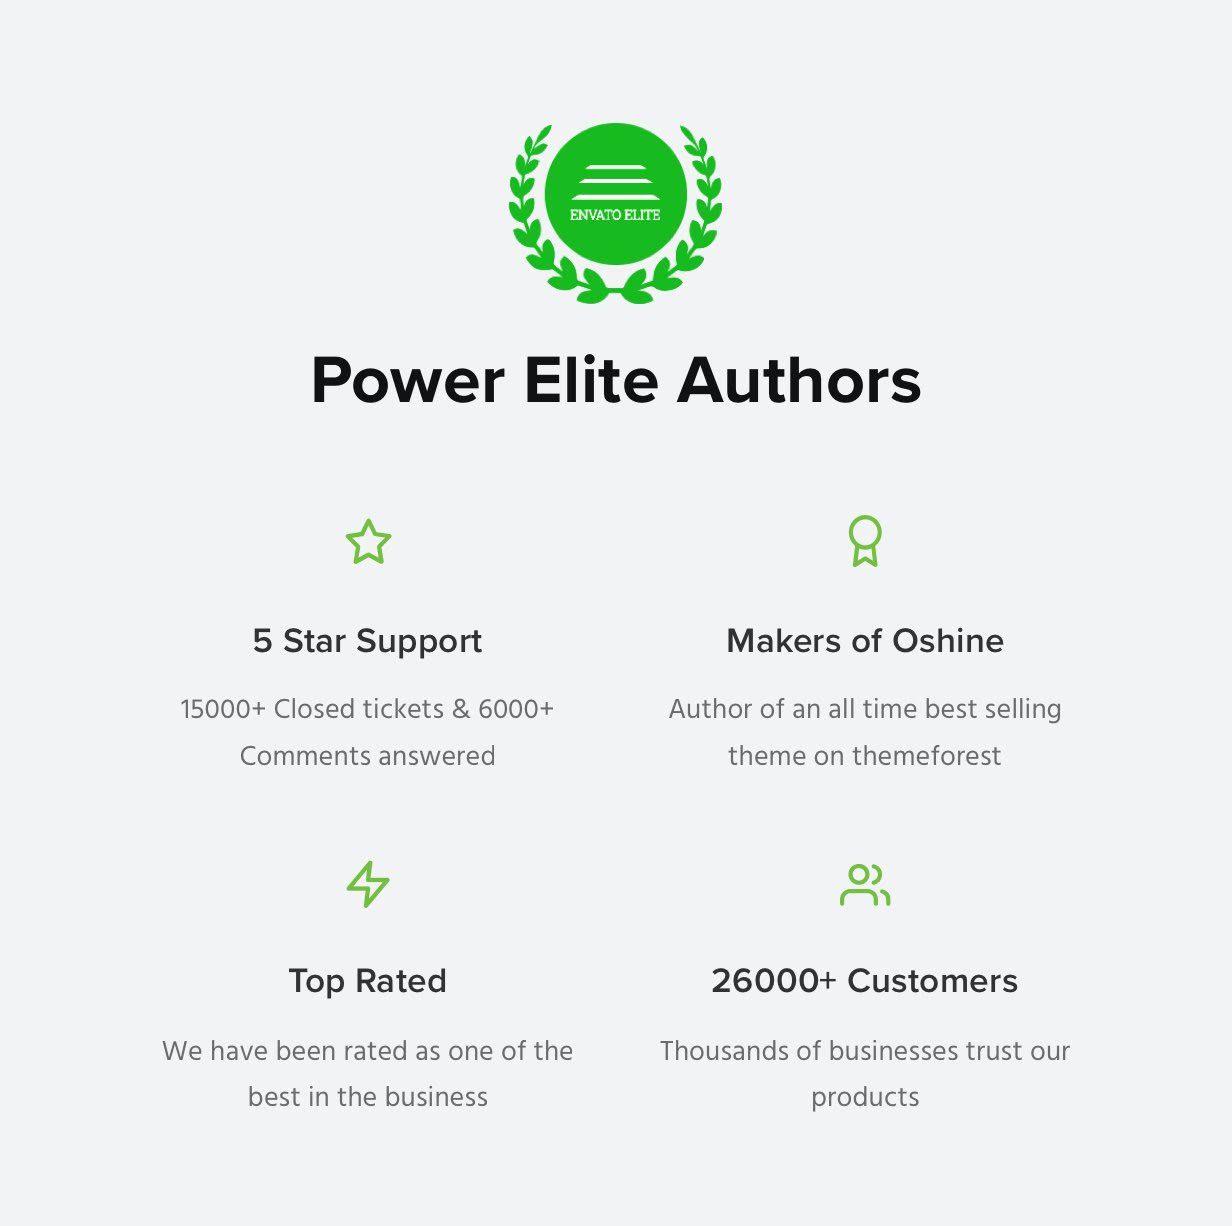 Power Elite Authors